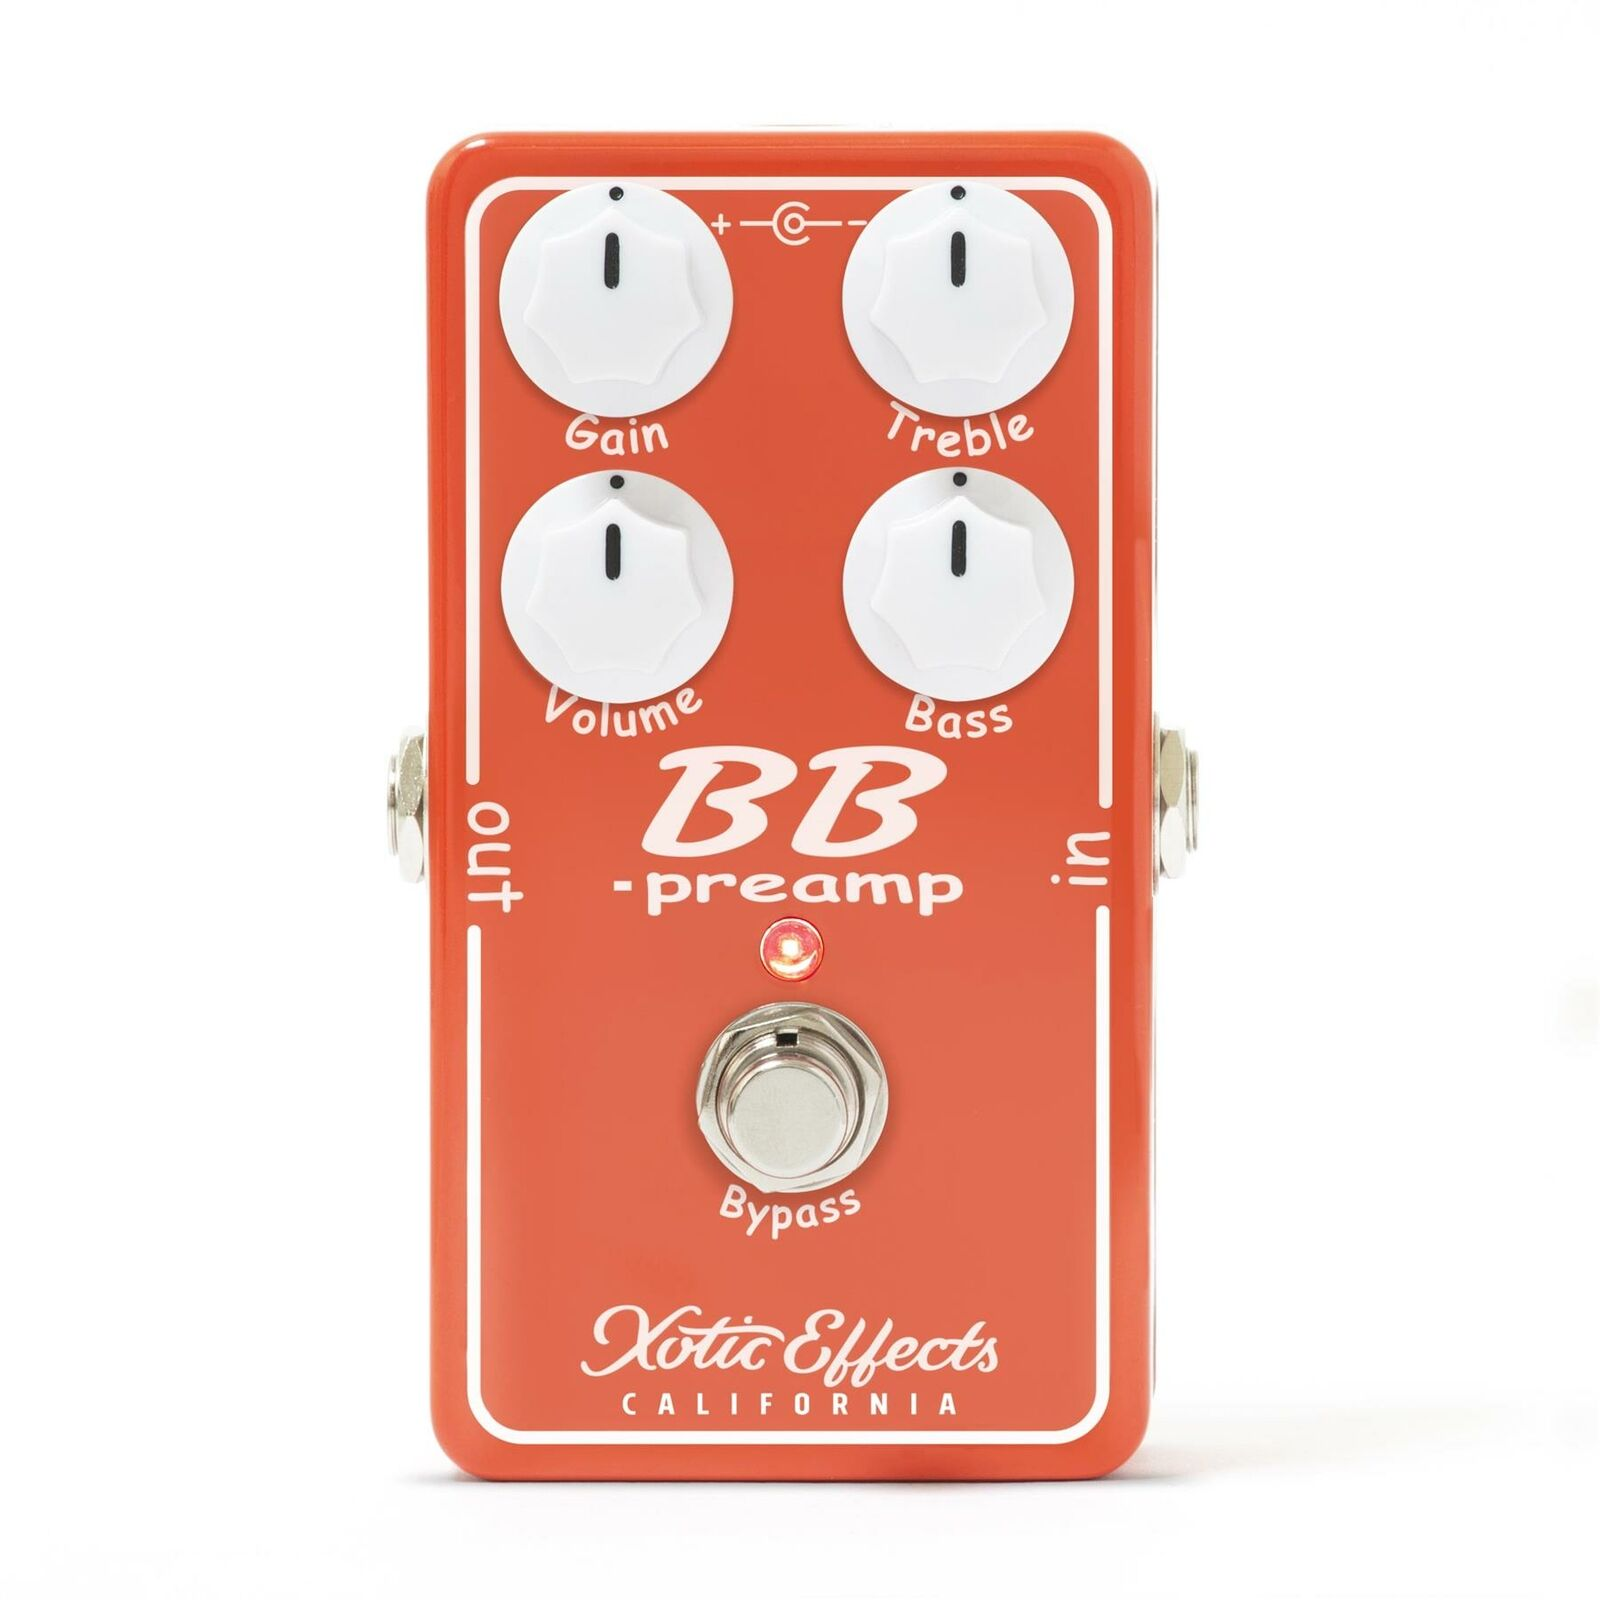 Xotic Effects BB Preamp V1.5 Pedal